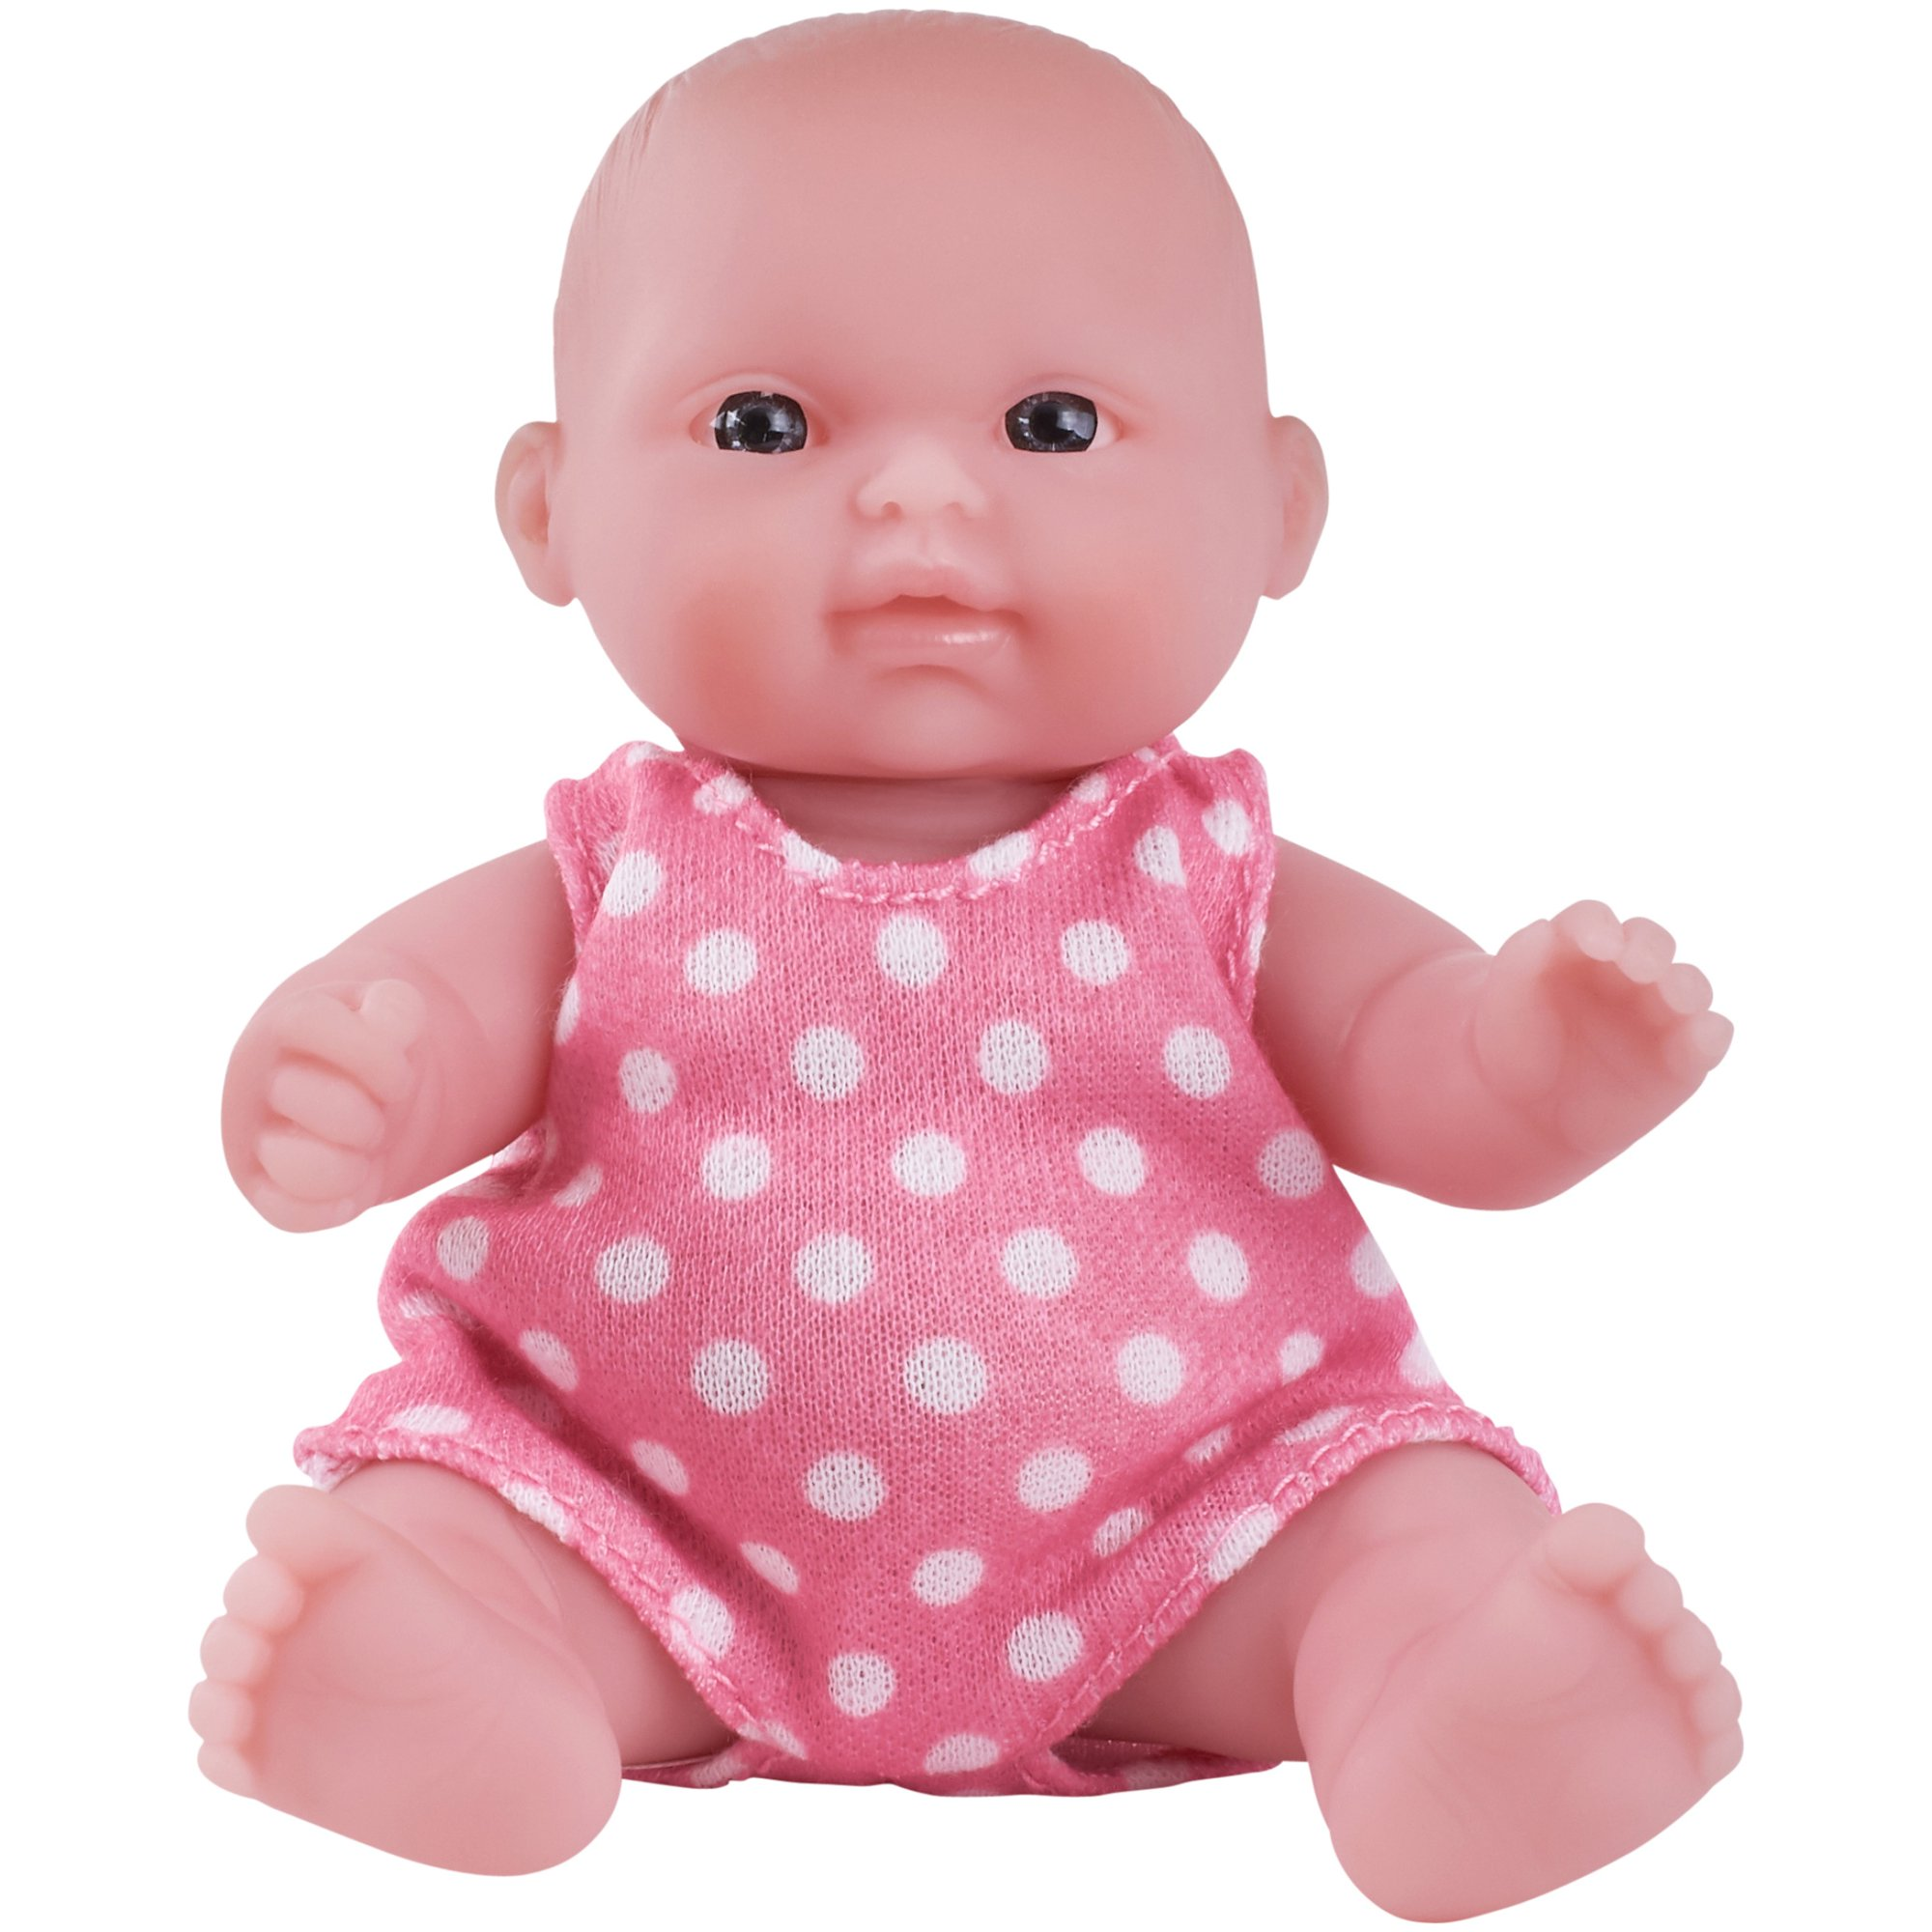 My Sweet Love Lots To Love 5 Baby Doll With Outfit And Mini Tricycle Walmart Com Walmart Com